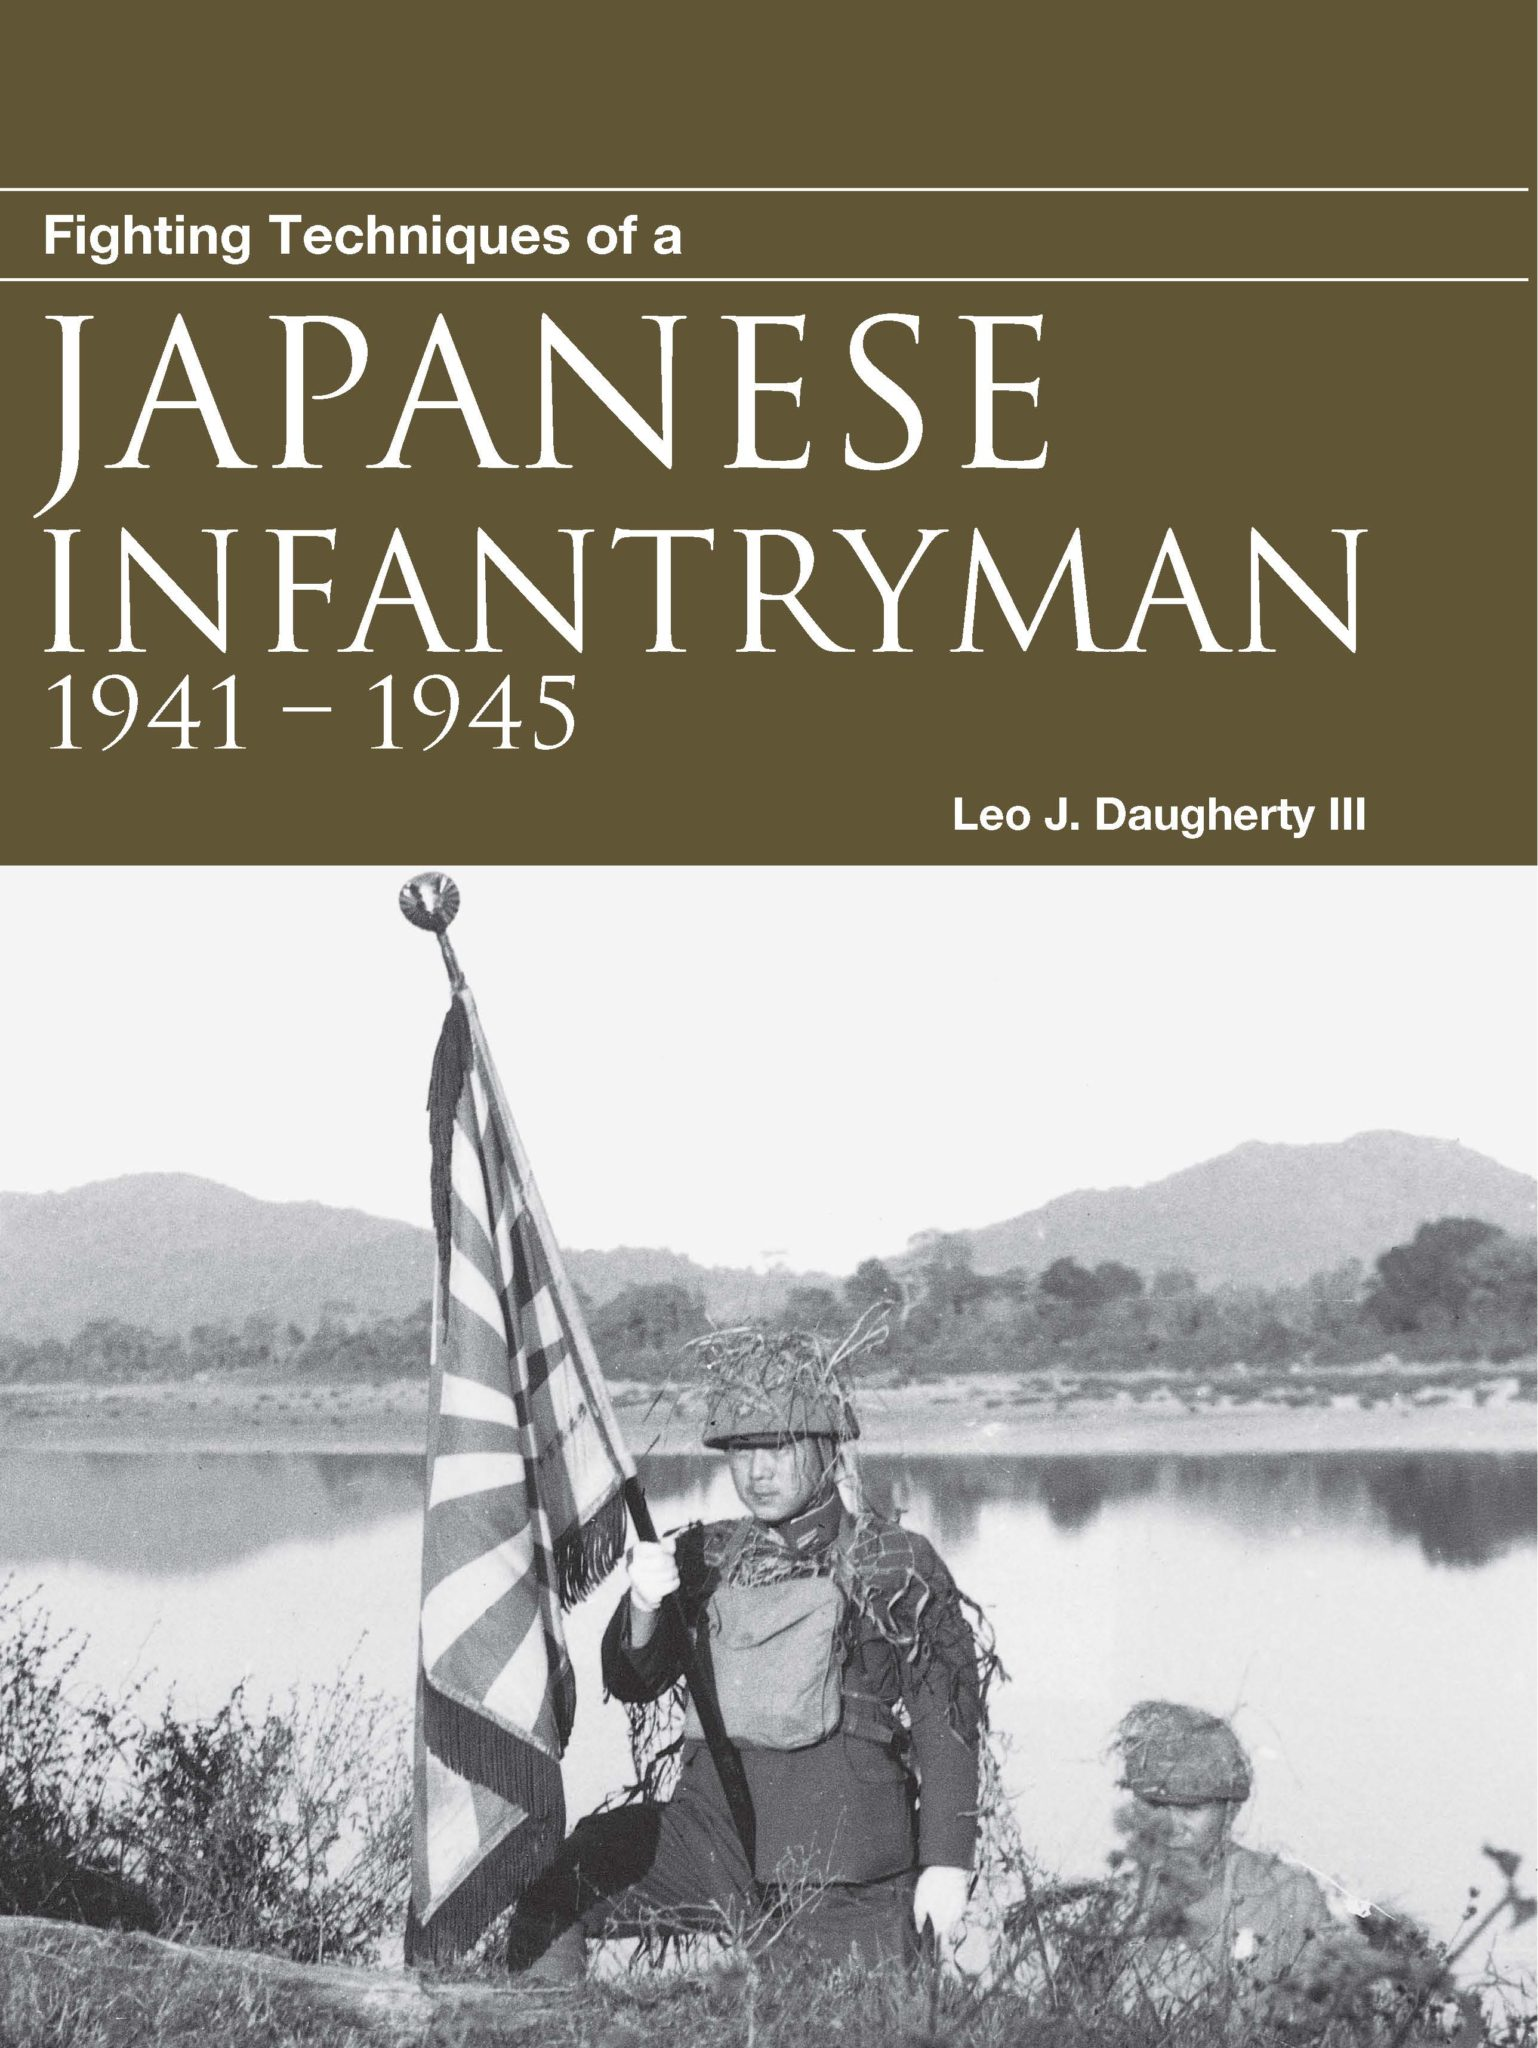 Fighting Techniques of a Japanese Infantryman 1941-45